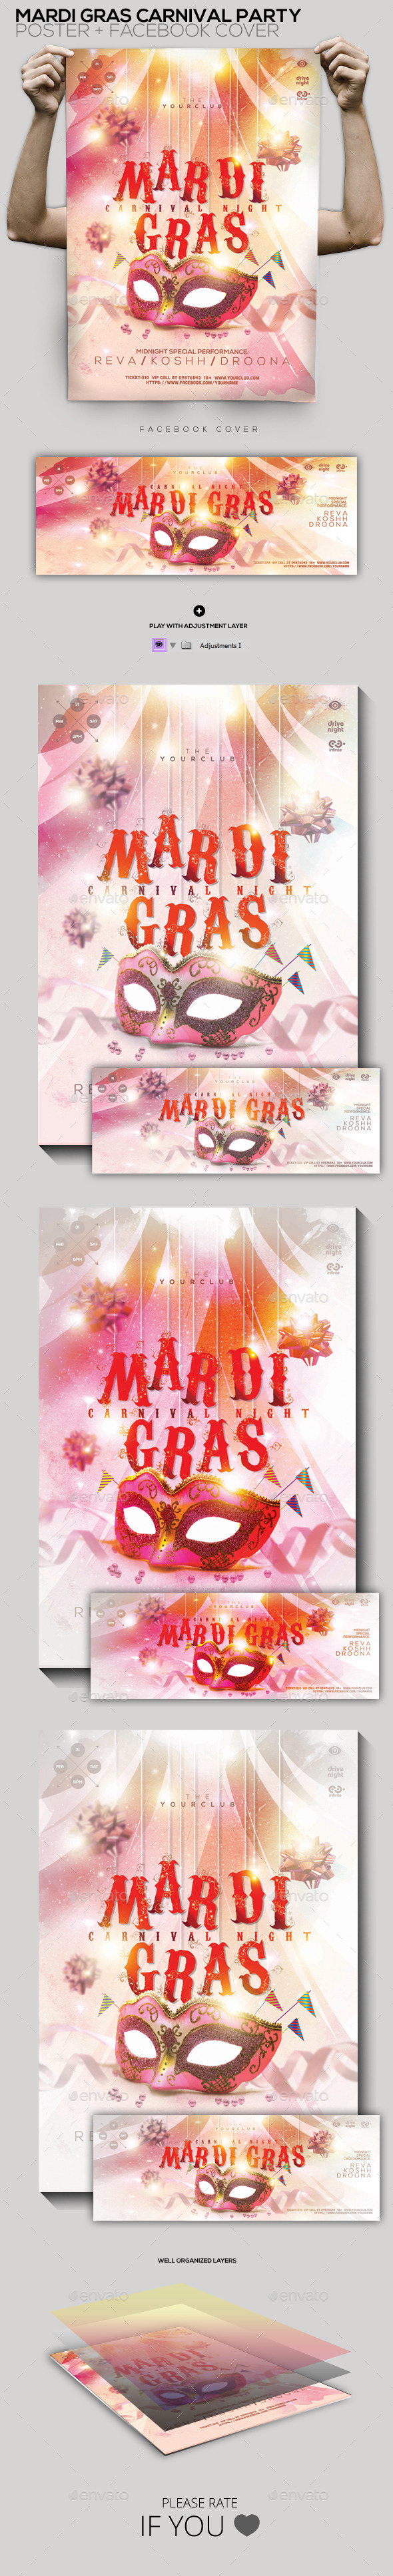 Mardi Gras Carnival Party Flyer Poster Facebook